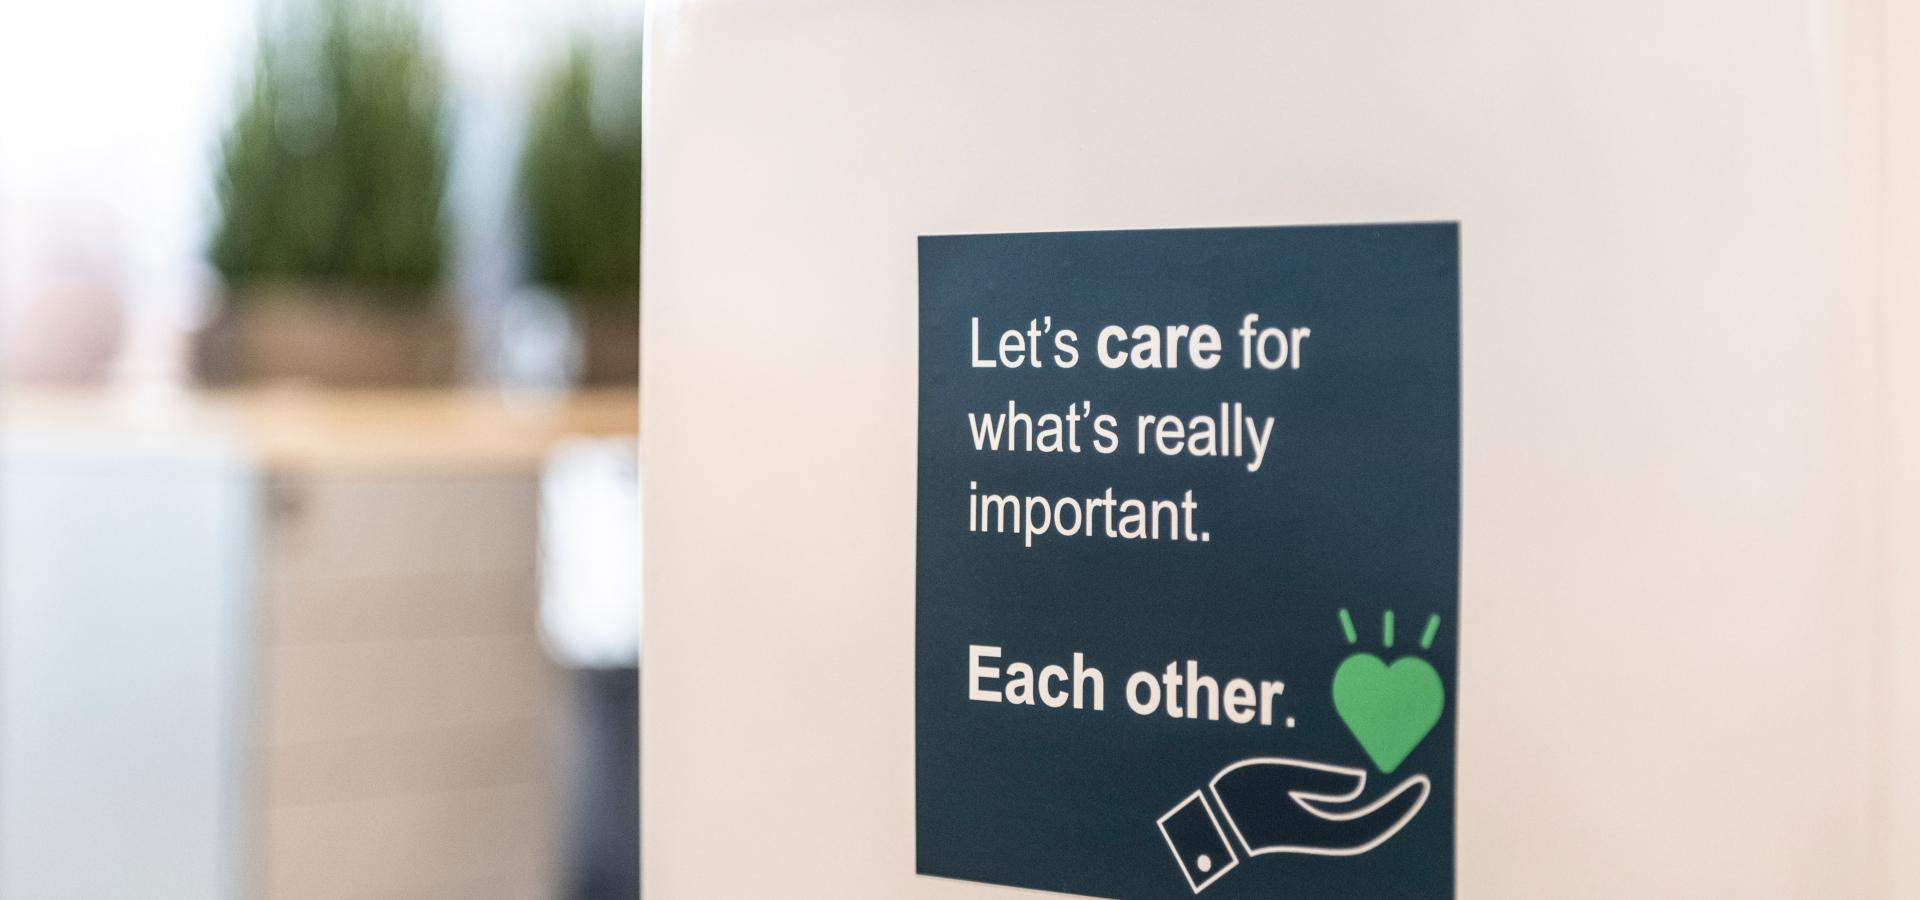 Let's care for what's really important, each other - Knauf Insulation